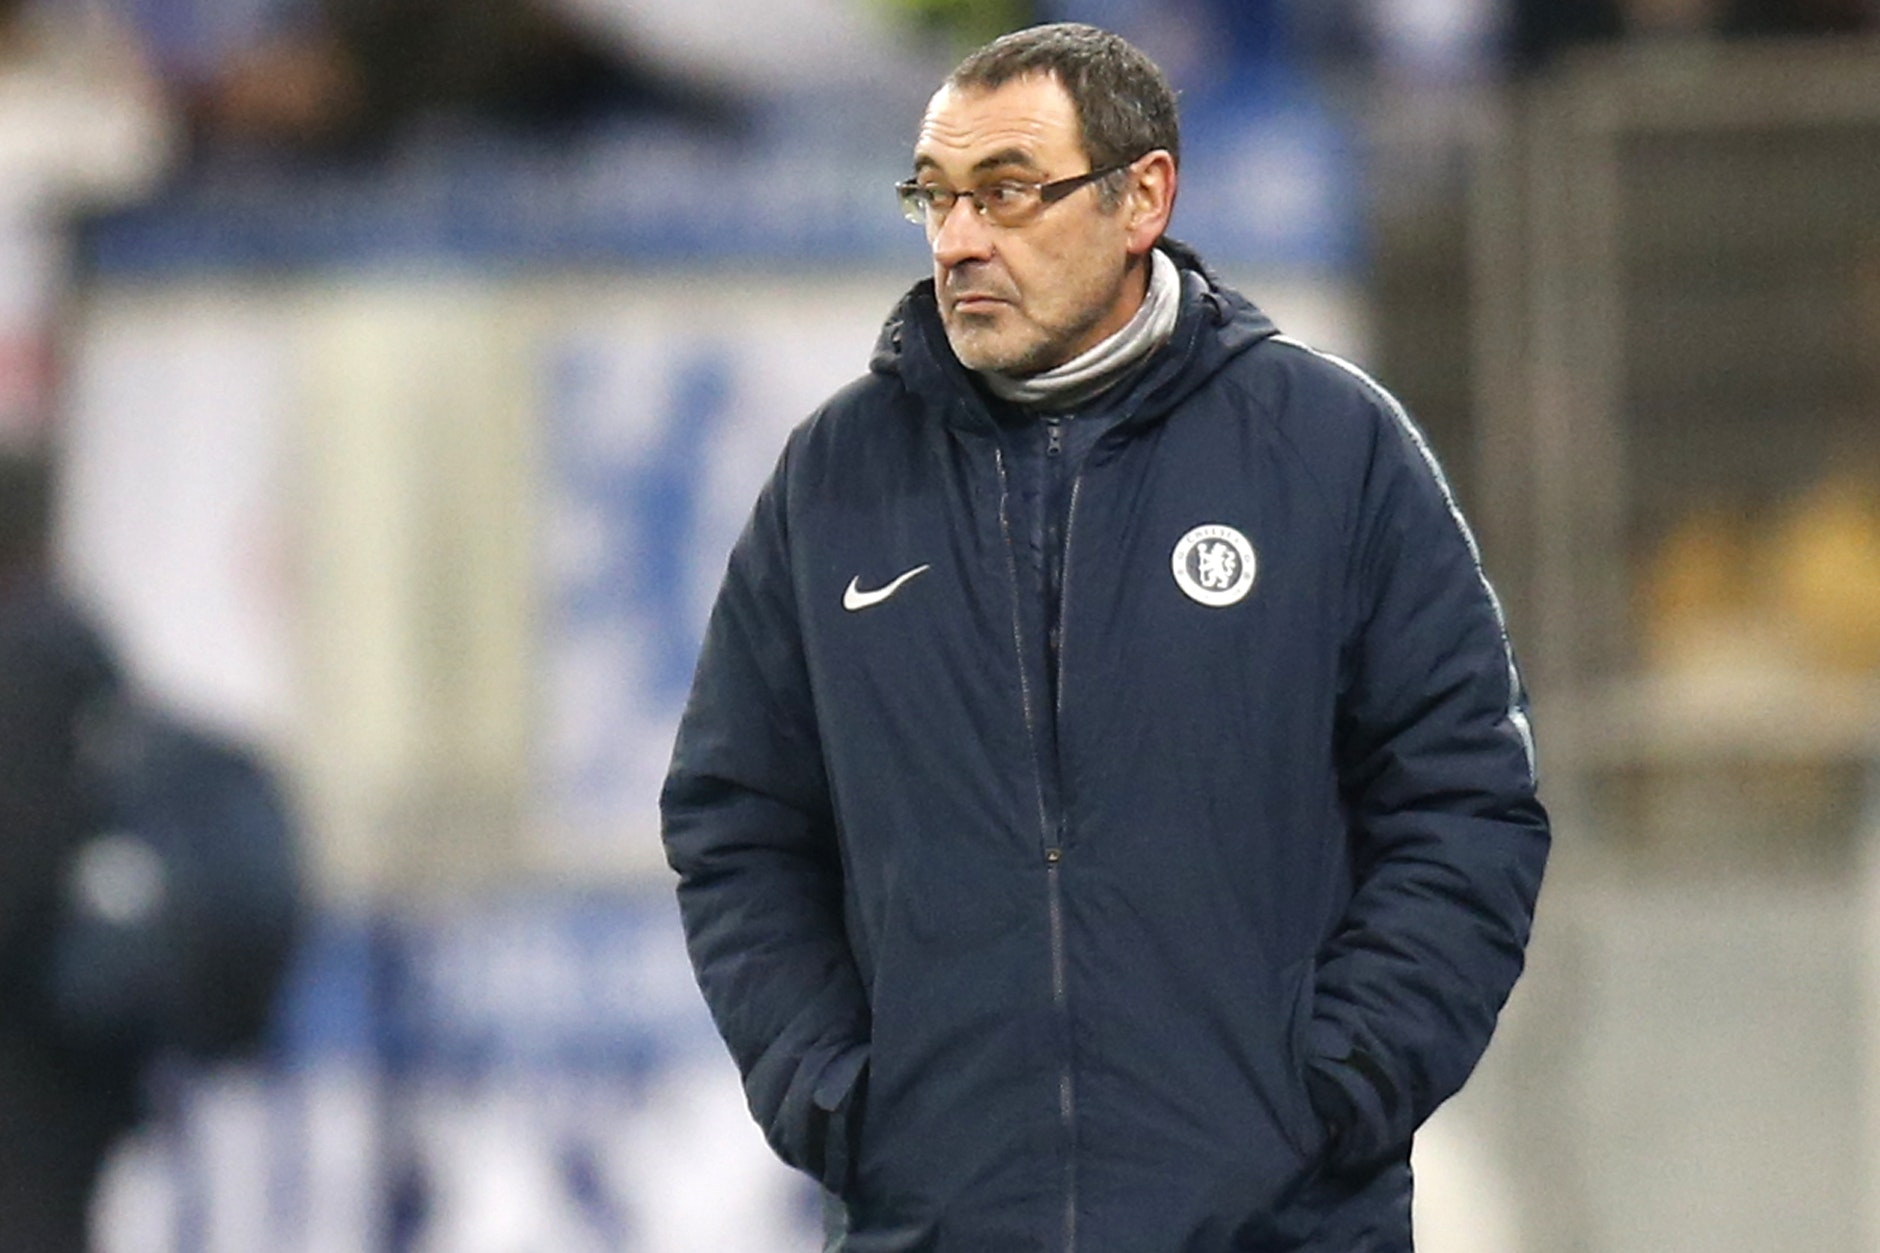 Maurizio Sarri is a former Napoli manager